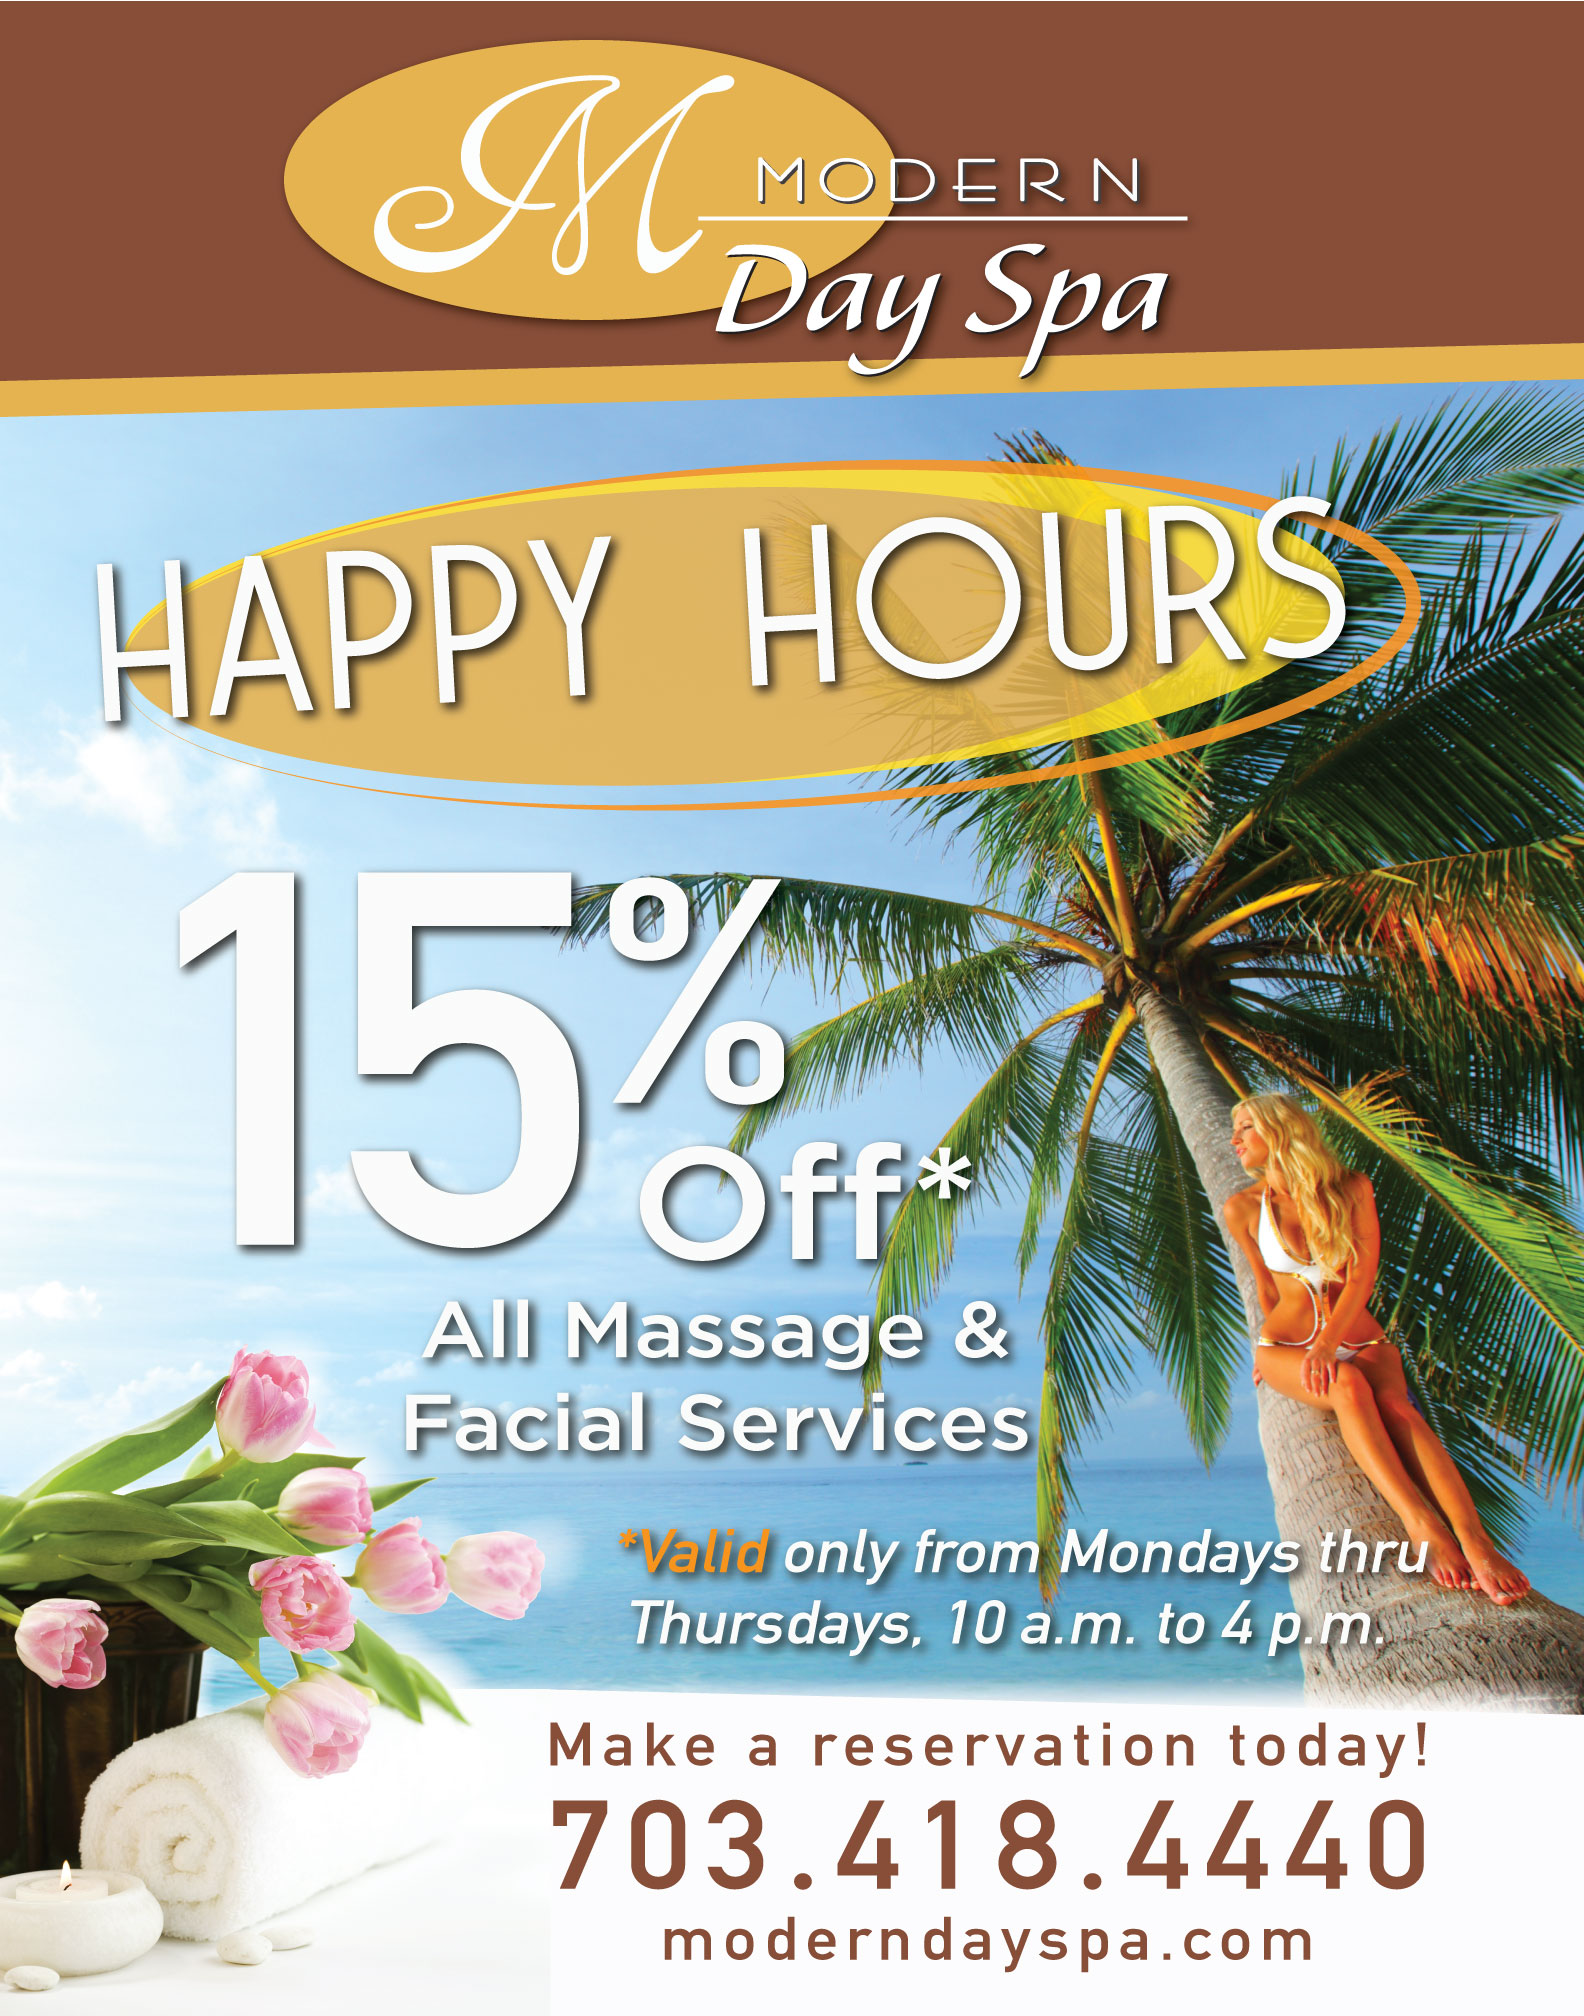 Happy Hours Specials at Modern Day Spa